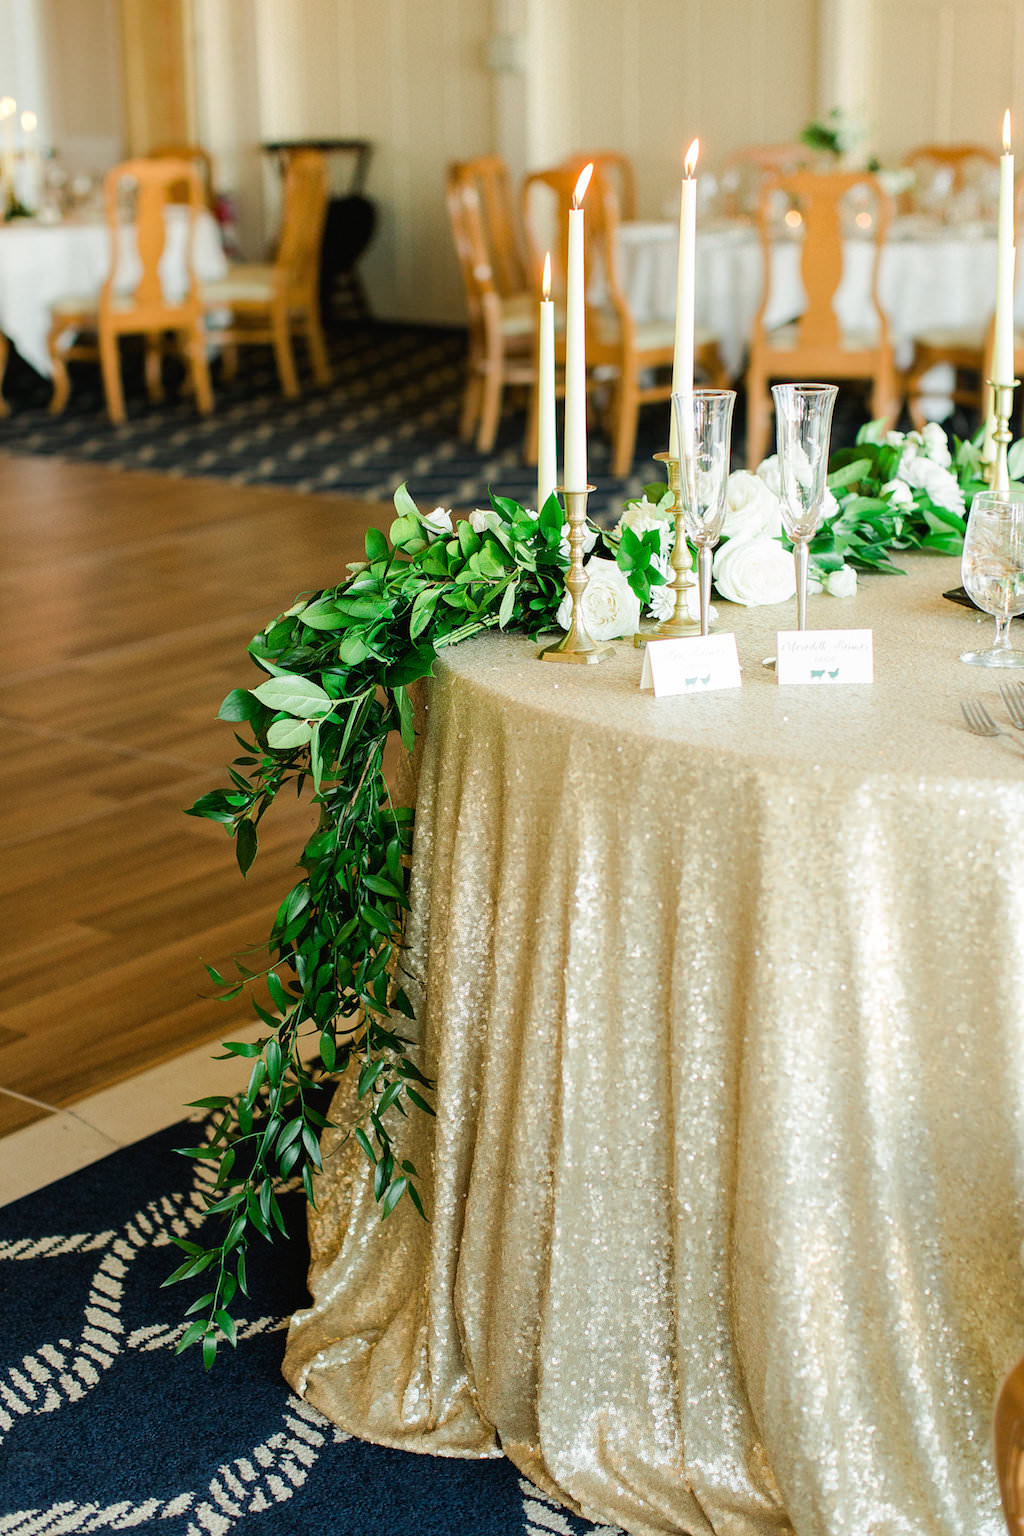 Old Florida Inspired White, Gold, and Green Wedding Reception Table Decor with Glitter Tablecloth, White Rose and Greenery Garland Centerpiece, and Elegant Candlestick holders | Clearwater Beach Wedding Reception Venue Carlouel Yacht Club | Tampa Bay Wedding Planner Glitz Events